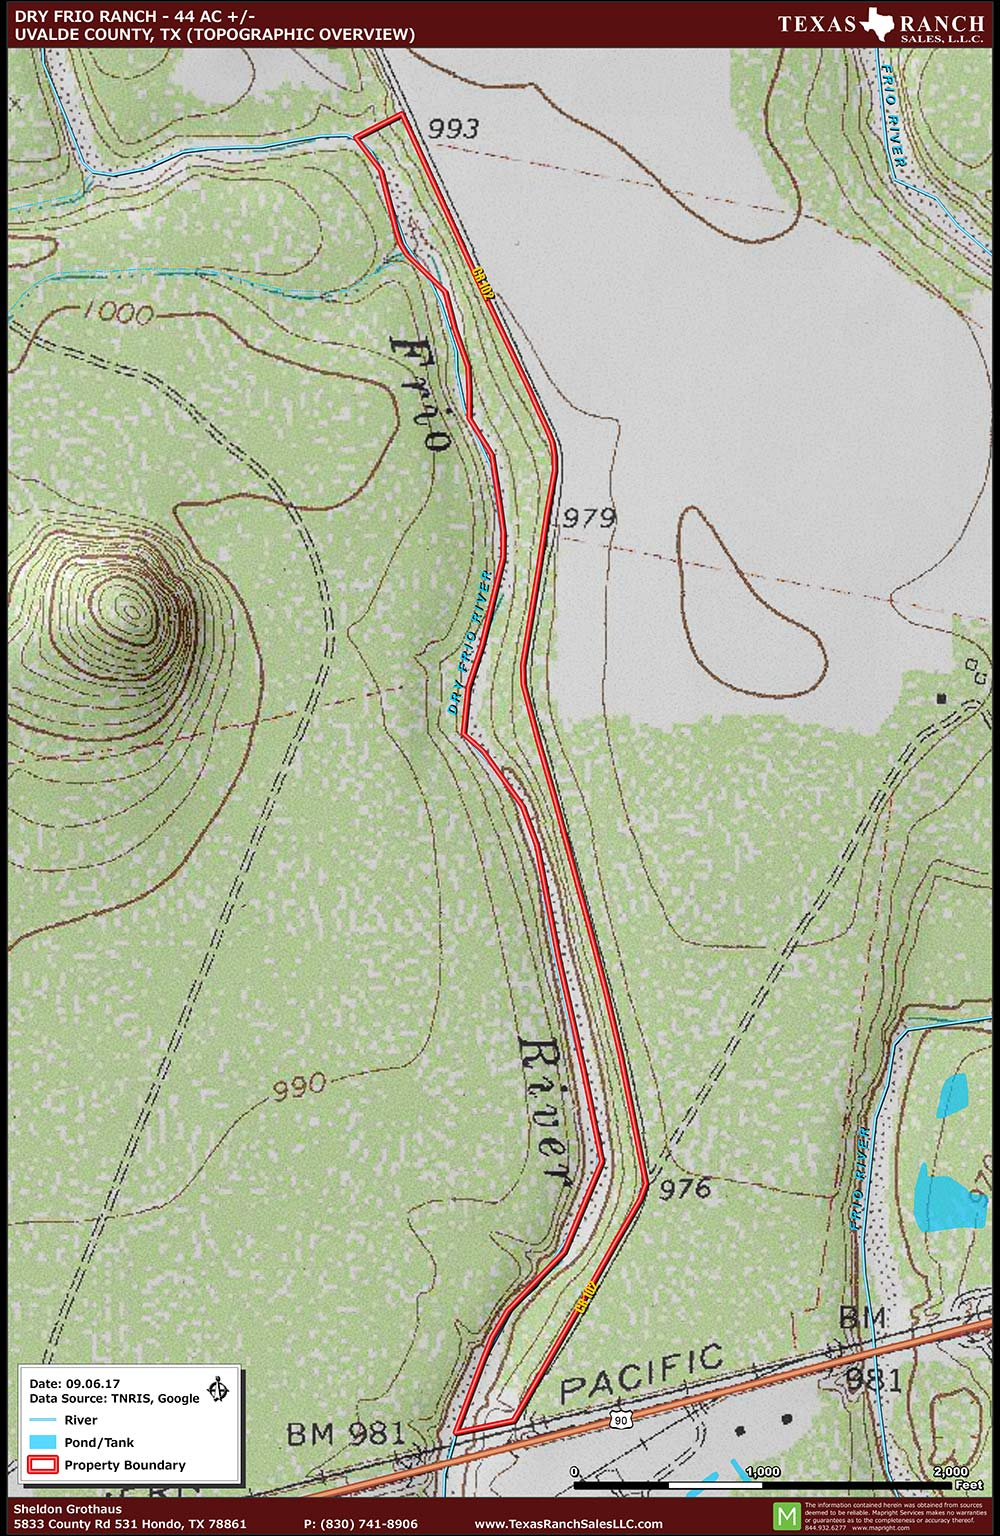 44 Acre Ranch Uvalde Topography Map